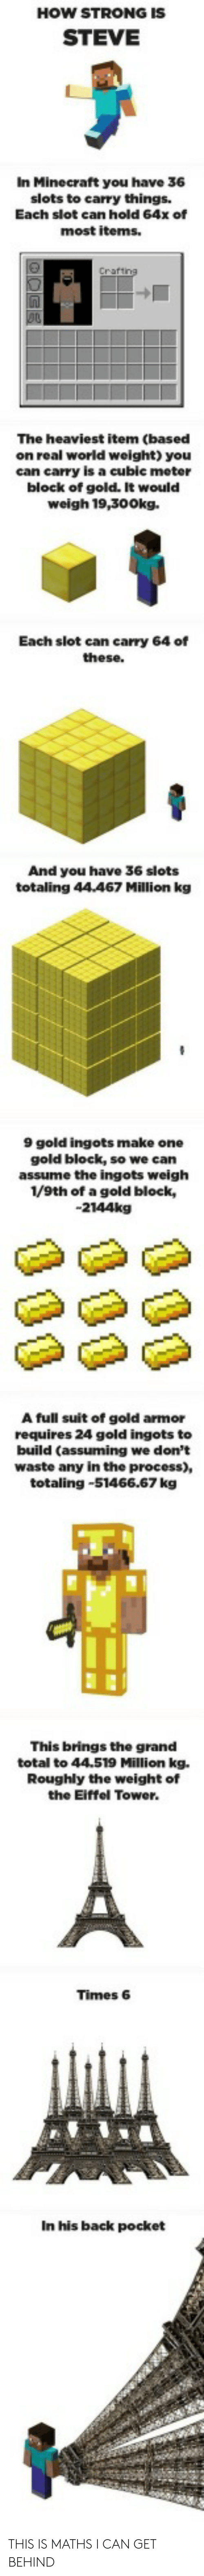 Minecraft, Eiffel Tower, and World: HOW STRONG IS  STEVE  In Minecraft you have 36  slots to carry things  Each slot can hold 64x of  most iterns  The heaviest item (based  on real world welght) you  can carry is a cubic meter  block of gold. It would  weigh 19,300kg.  Each slot can carry 64 of  And you have 36 slots  totaling 44467 Million kg  9 gold ingots make one  gold block, so we can  assume the ingots weigh  1/9th of a gold block,  -2144kg  A full suit of gold armor  requires 24 gold ingots to  build (assuming we don't  waste any in the process),  totaling-51466.67 kg  This brings the grand  total to 44.519 Million kg.  Roughly the weight of  the Eiffel Tower.  Times6  In his back pocket THIS IS MATHS I CAN GET BEHIND